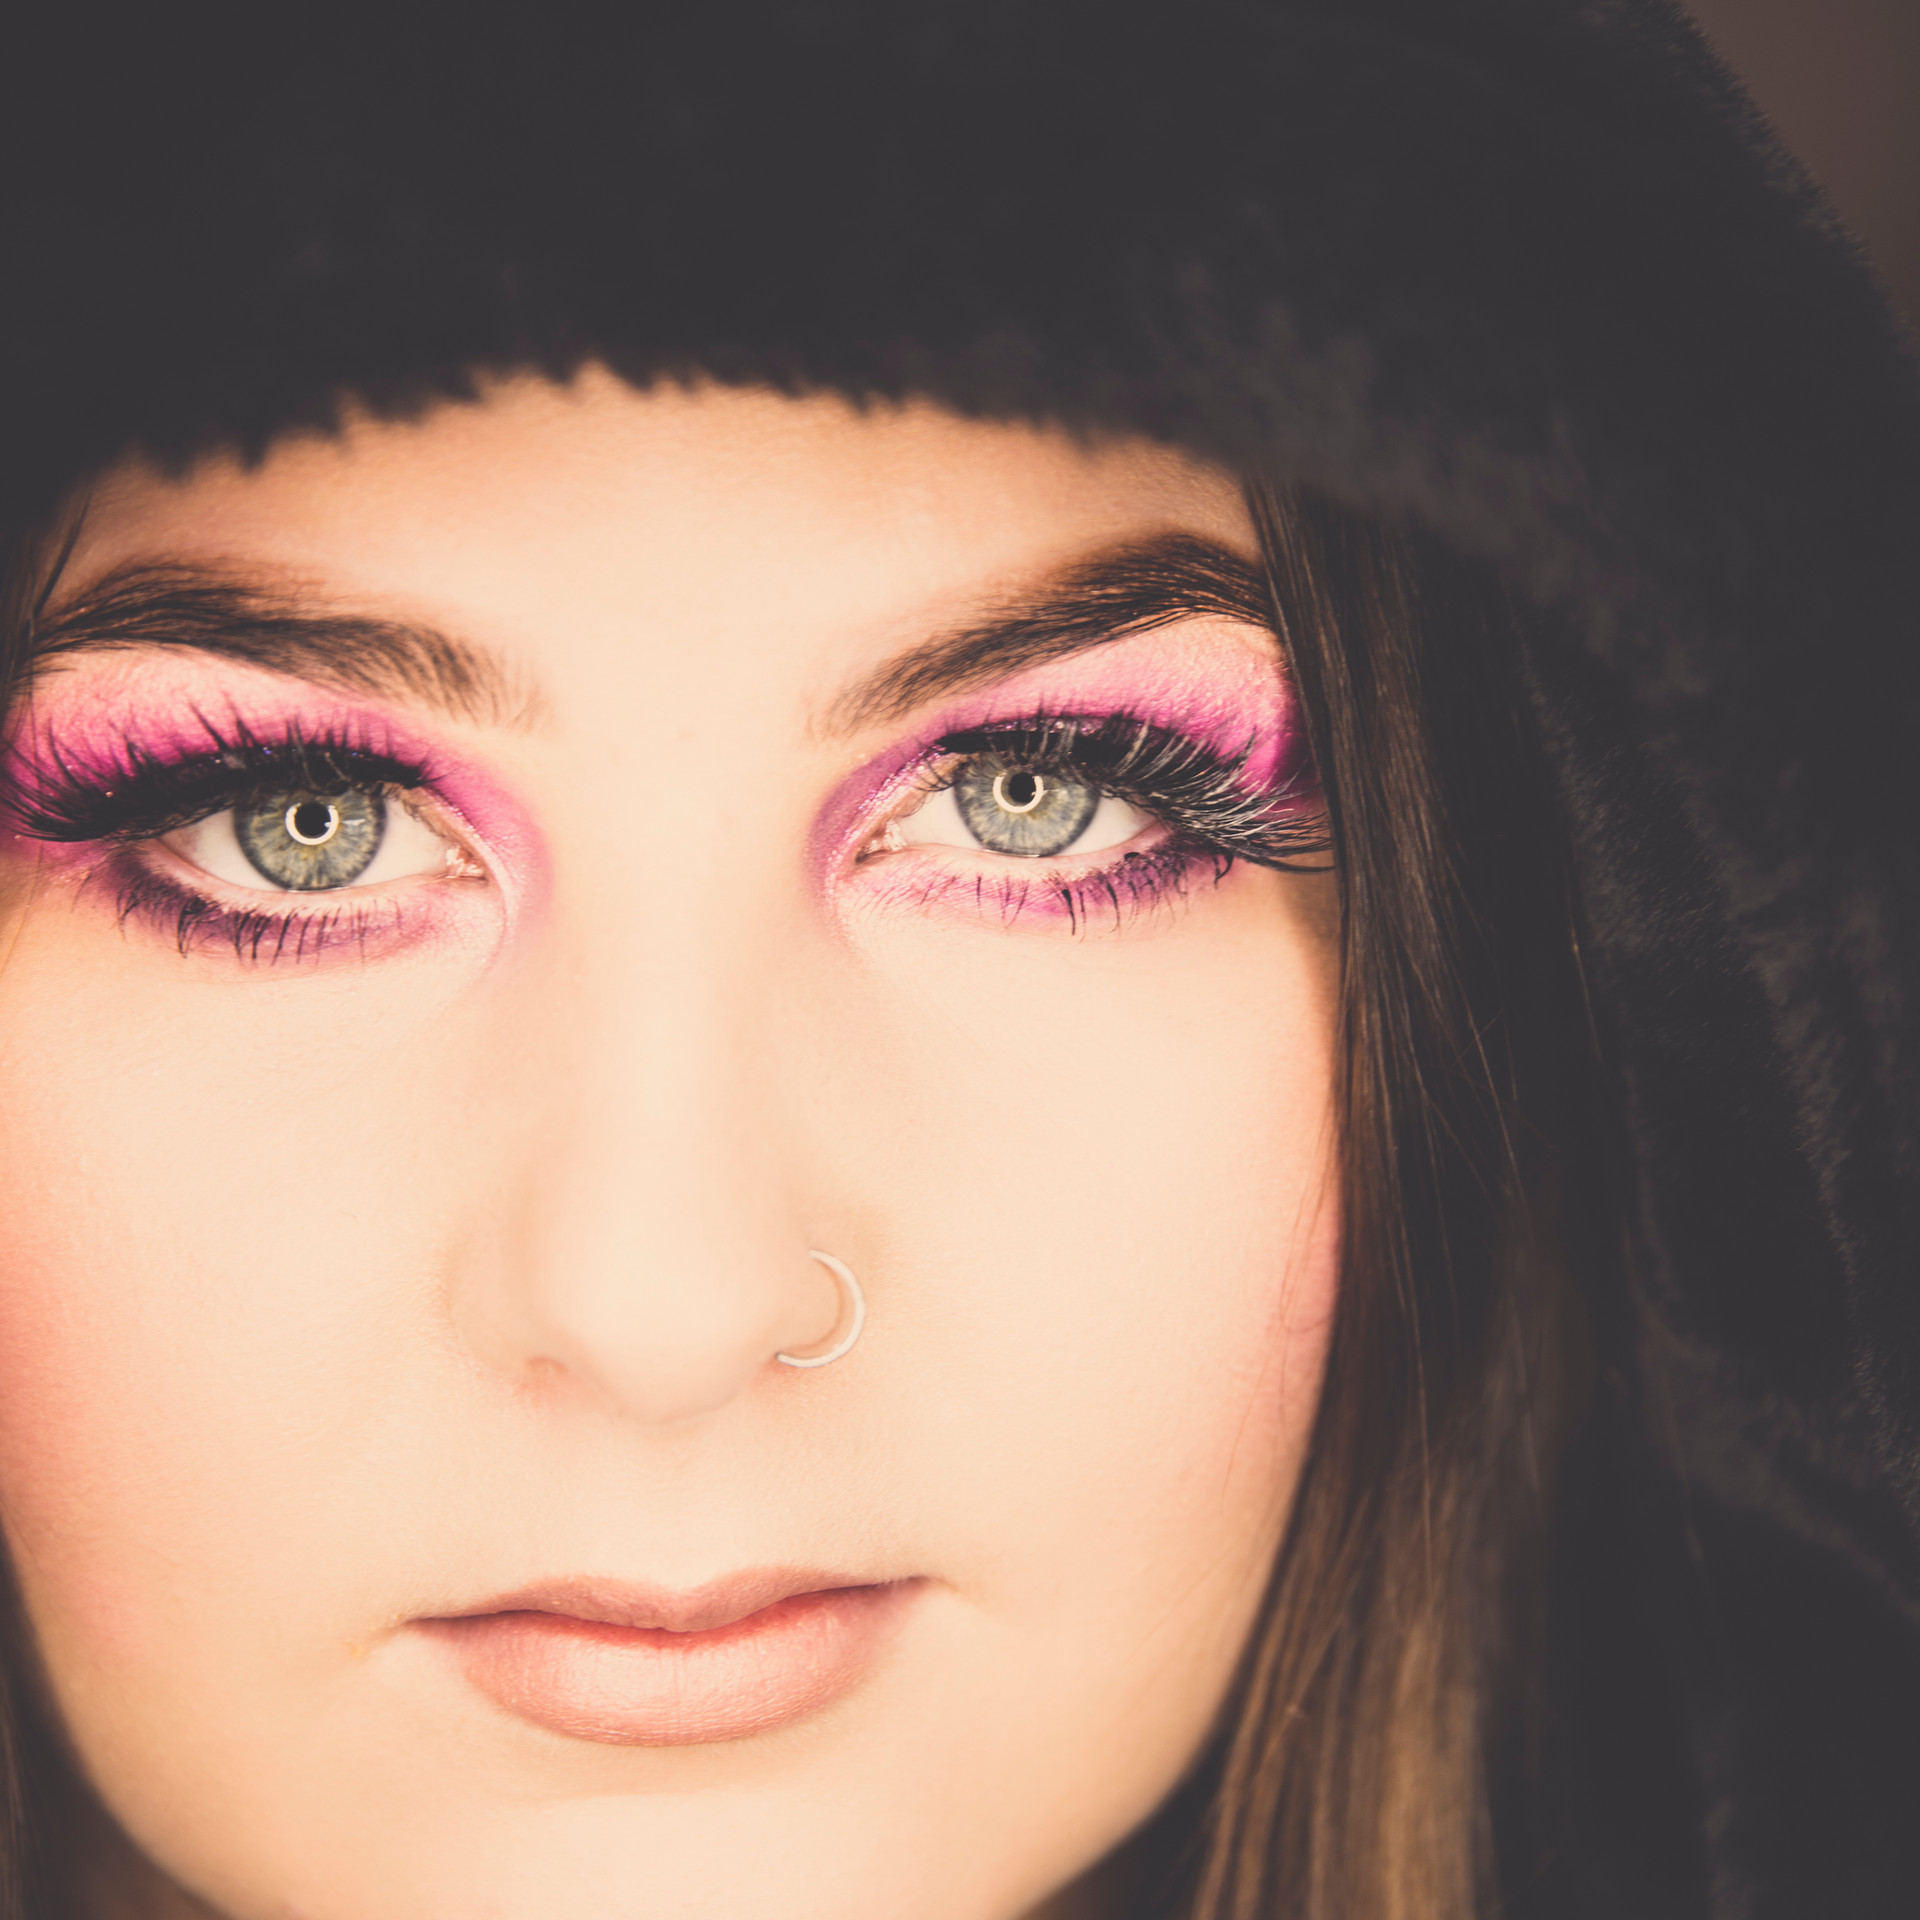 The Eyes Have It- Teen Portraits